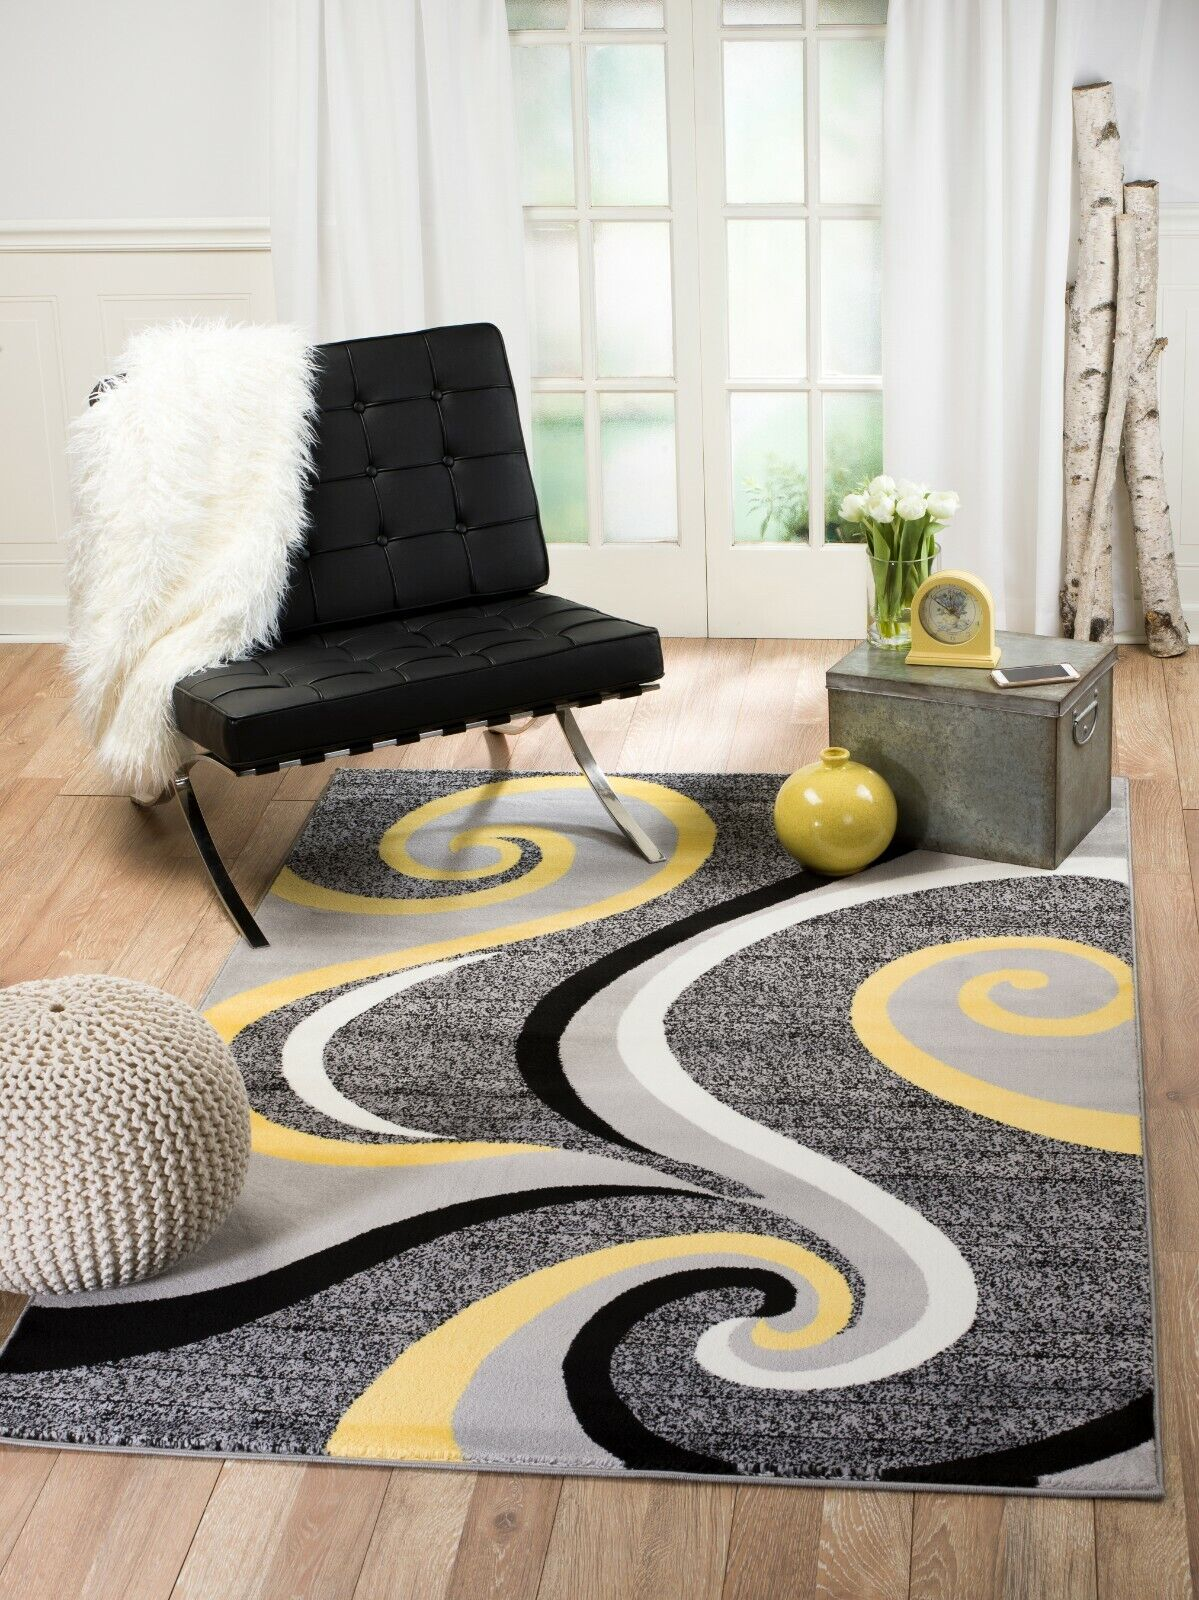 Area rug Smt#39 Modern yellow gray soft pile size options 2x